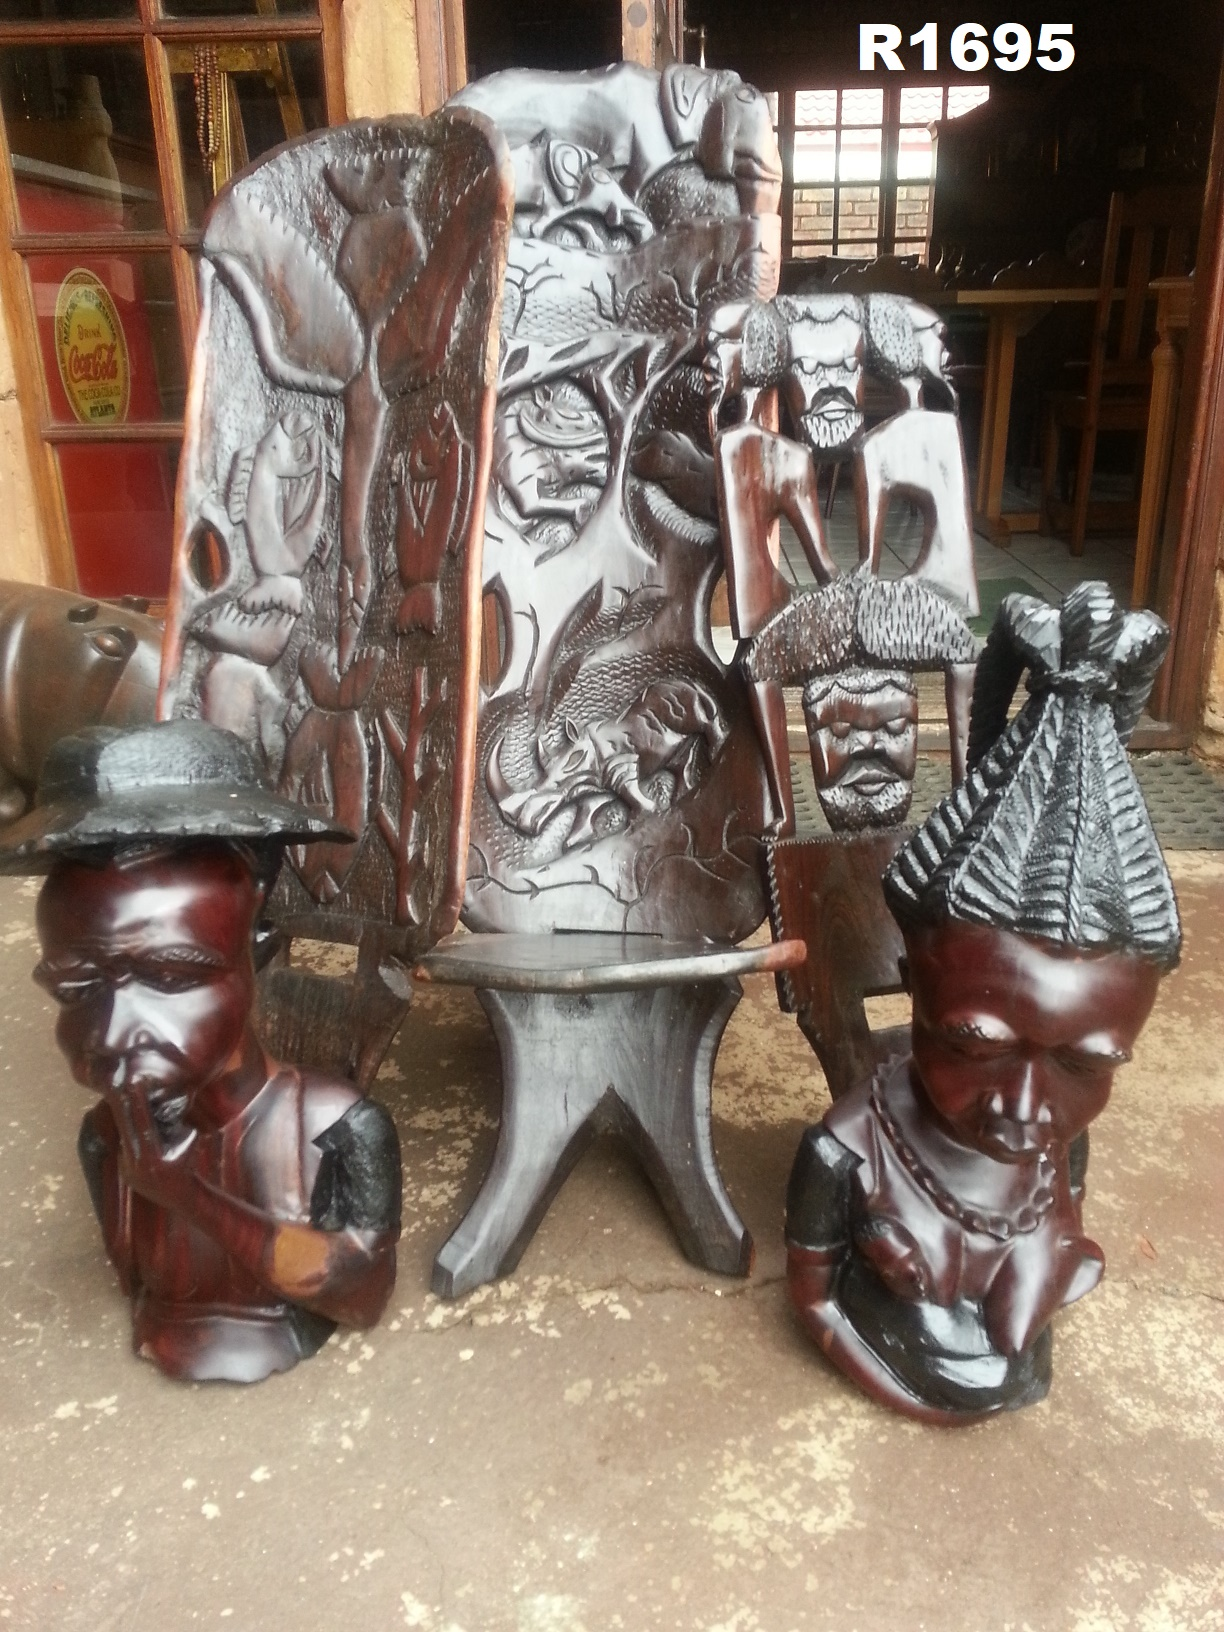 Classic Wooden Art Sculptures and Chair